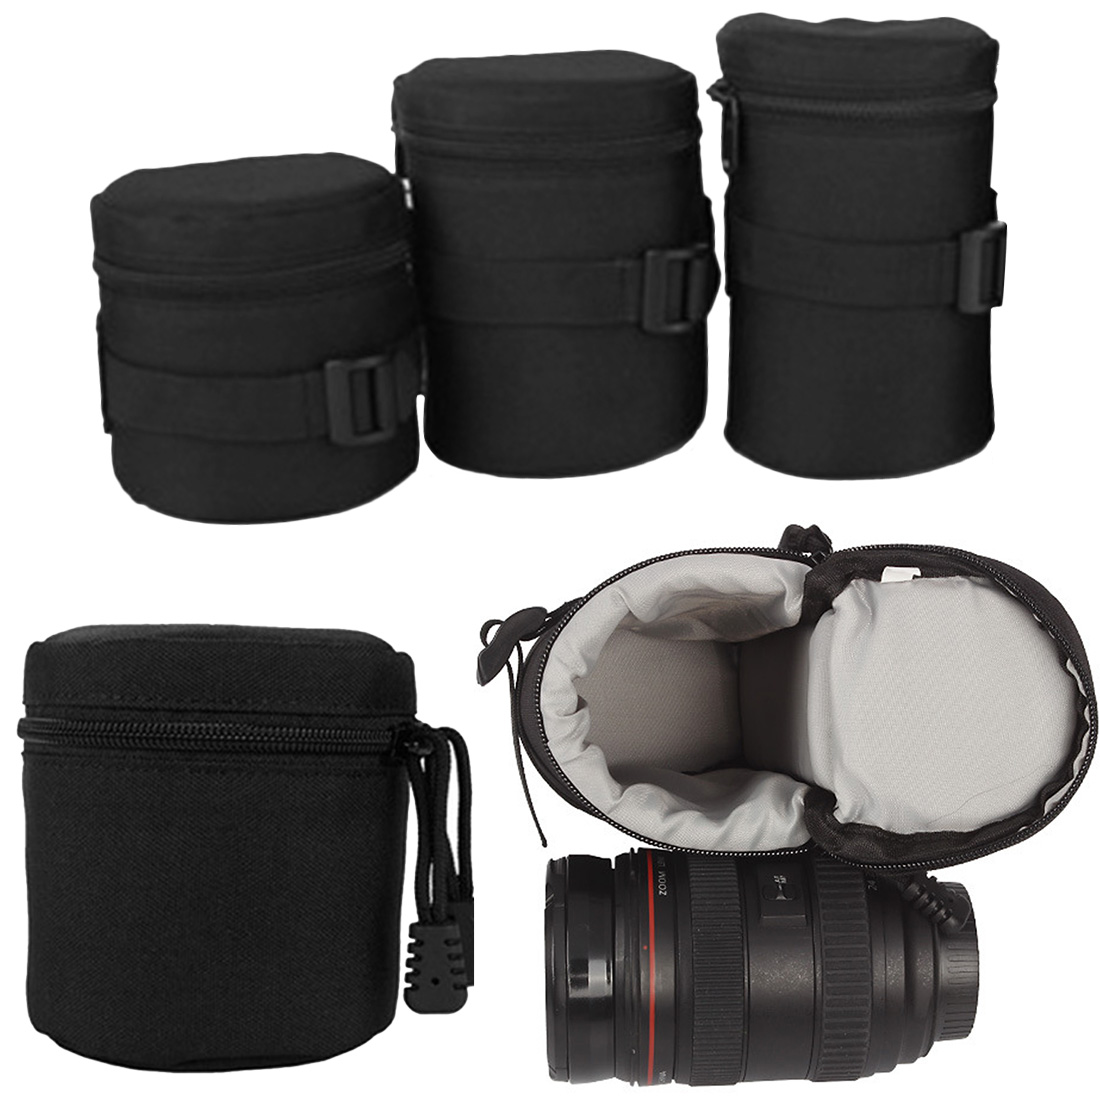 For DSLR Nikon Canon Sony Lenses High Quality Black Waterproof Padded Protector Camera Lens Bag Case Pouch Size S M L image